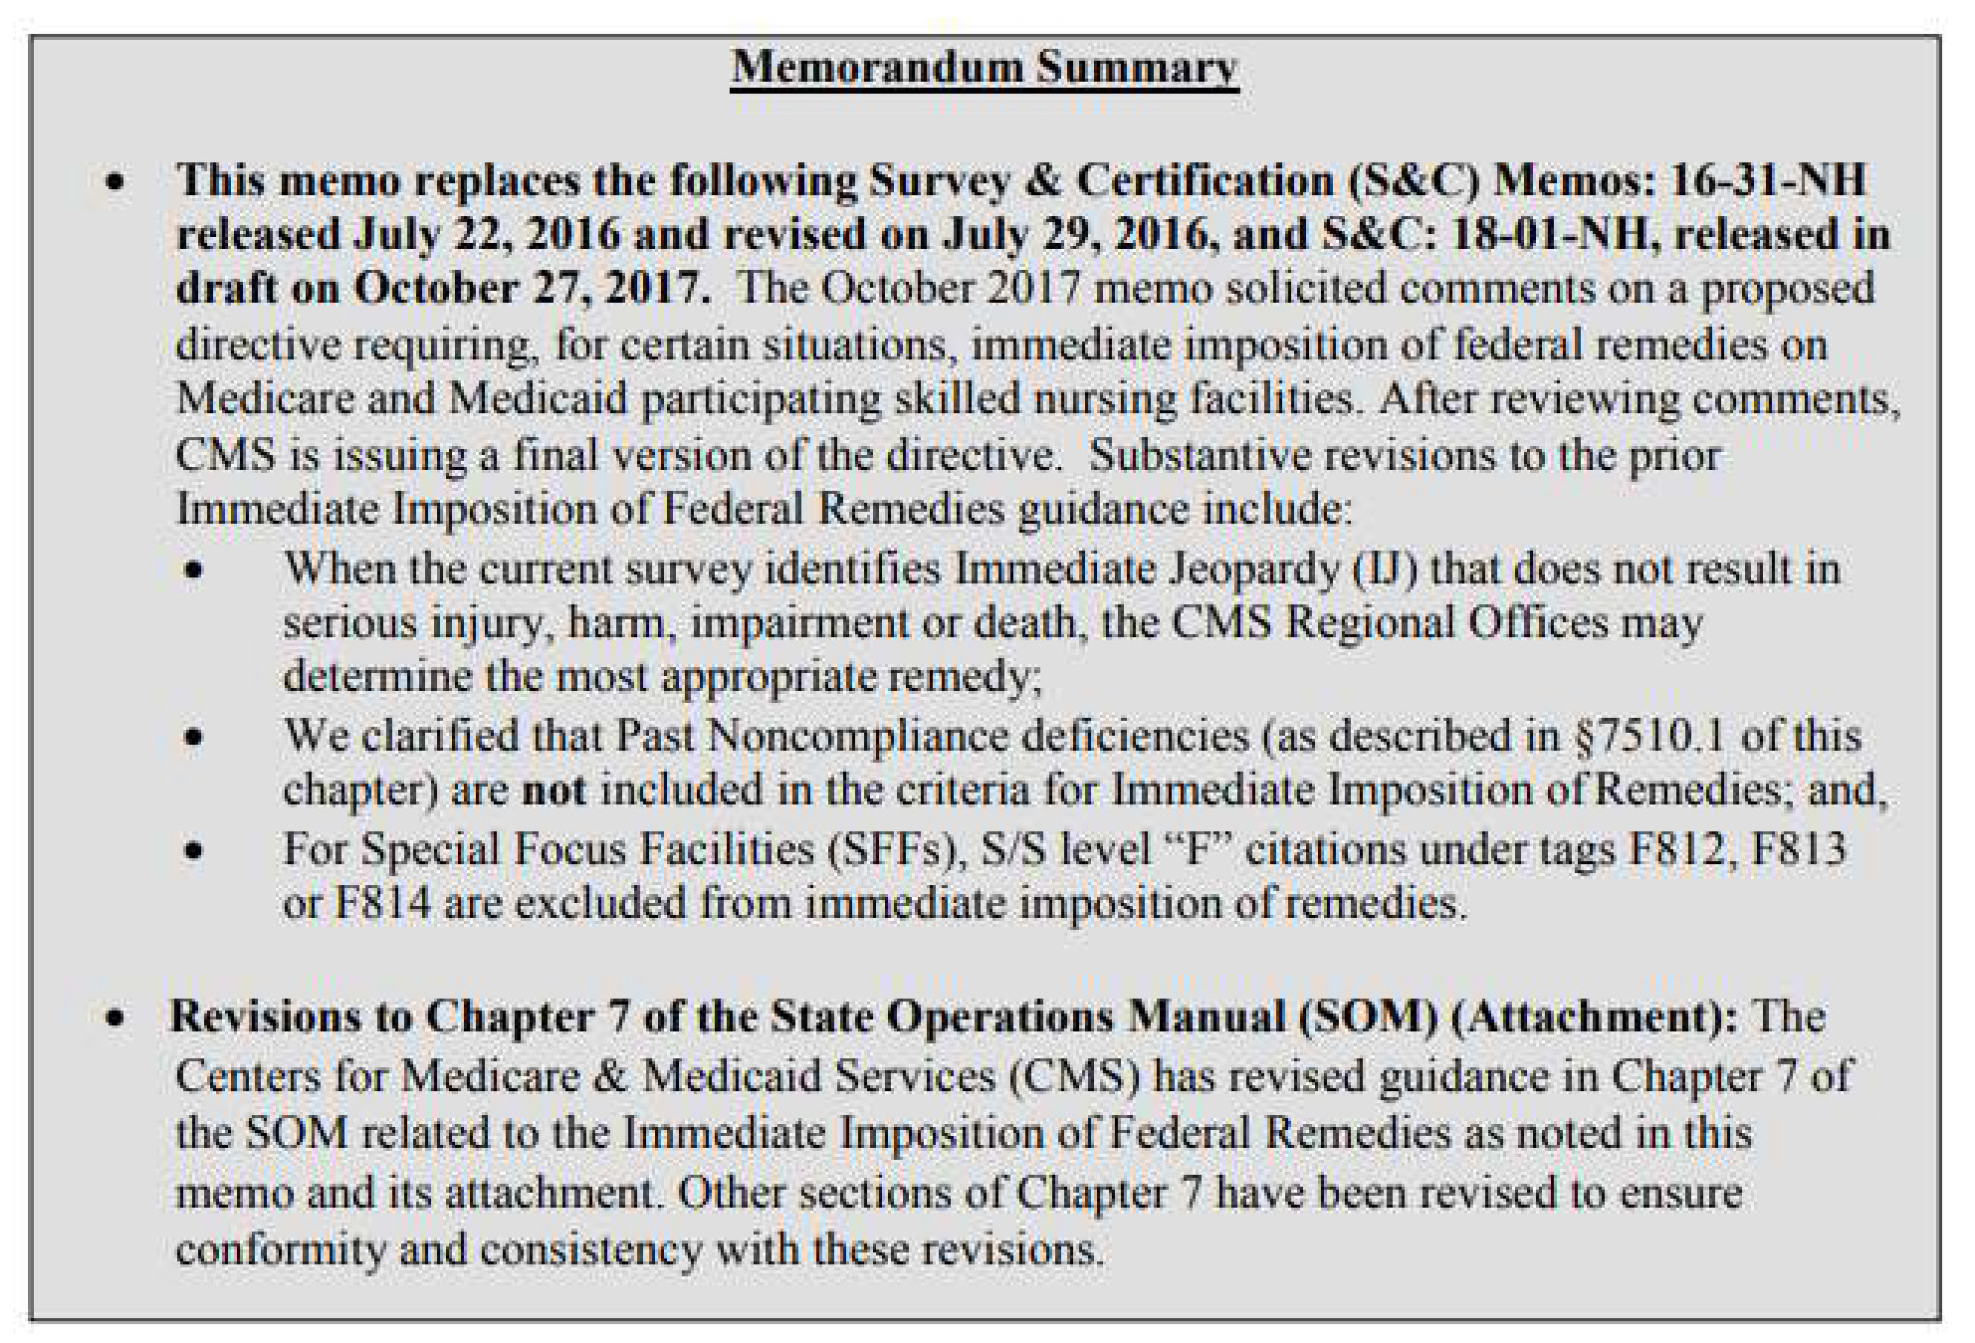 Final Revised Policies Regarding the Immediate Imposition of Federal  Remedies Chapter 7 of the State Operations Manual